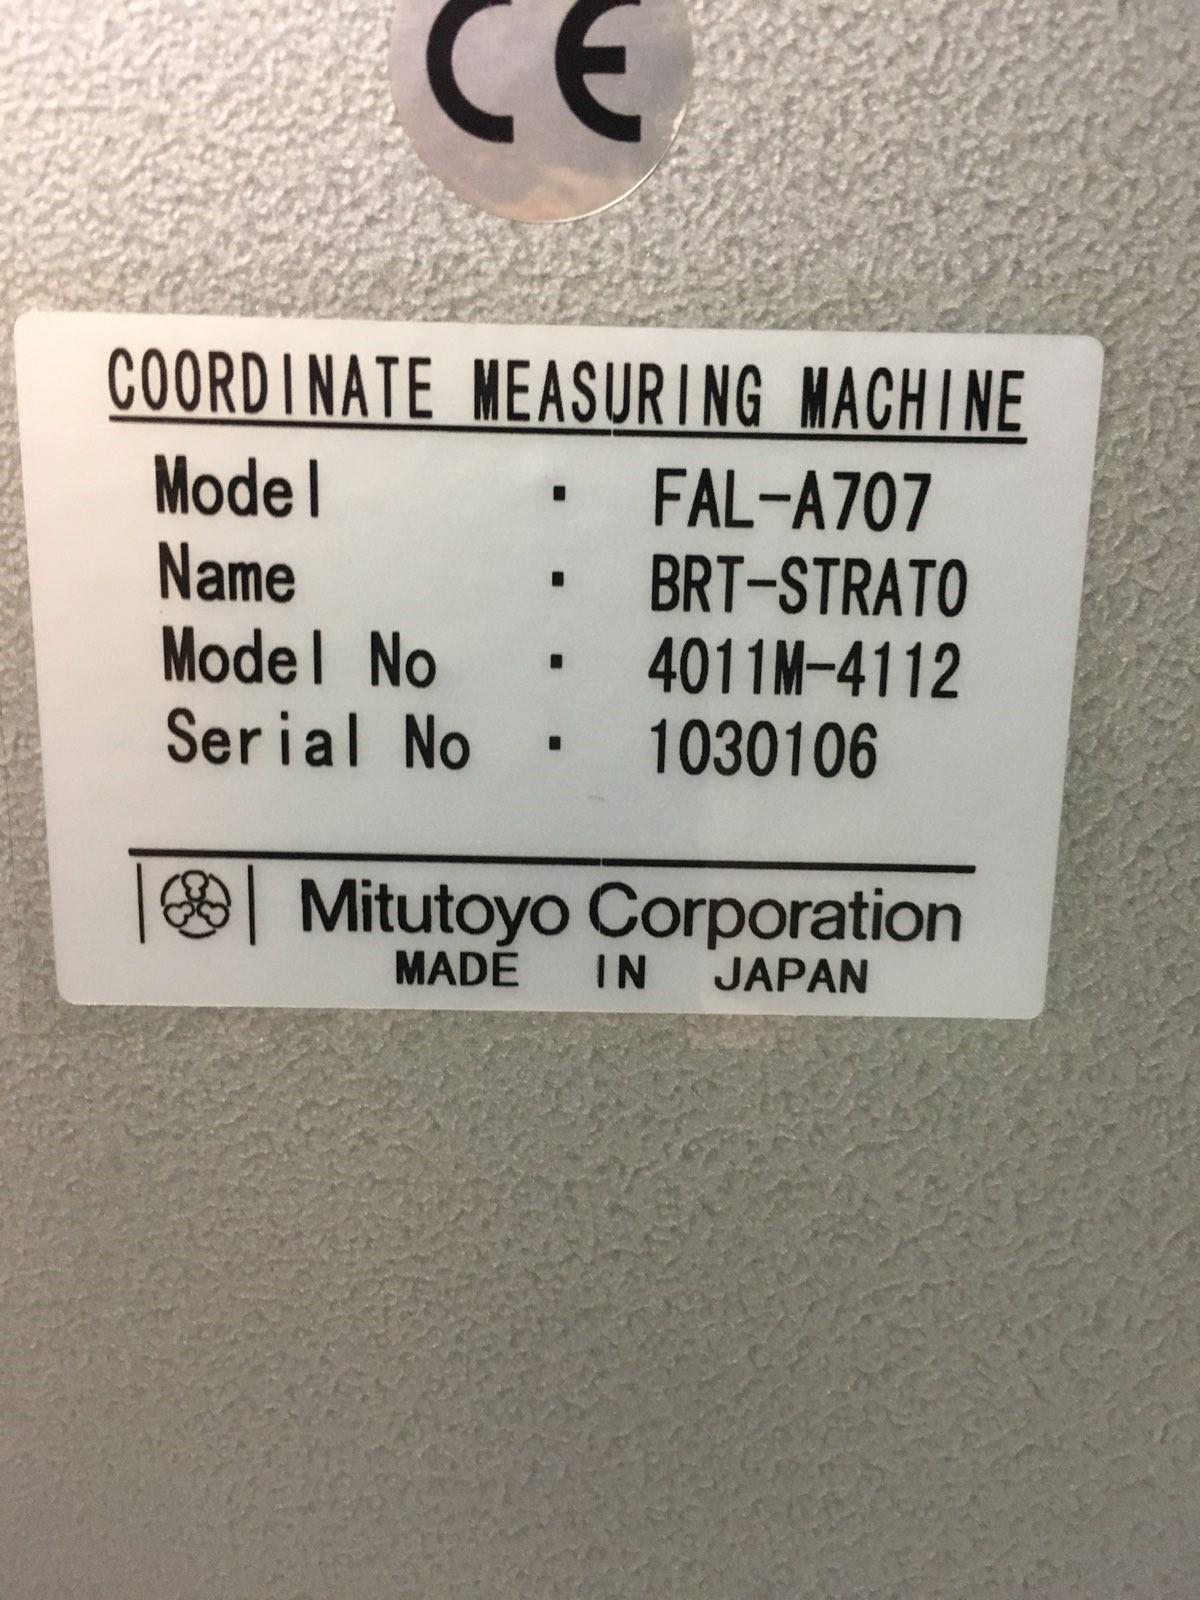 MITUTOYOMitutoyo Bright Strato A707 CNC Coordinate Measuring Machine